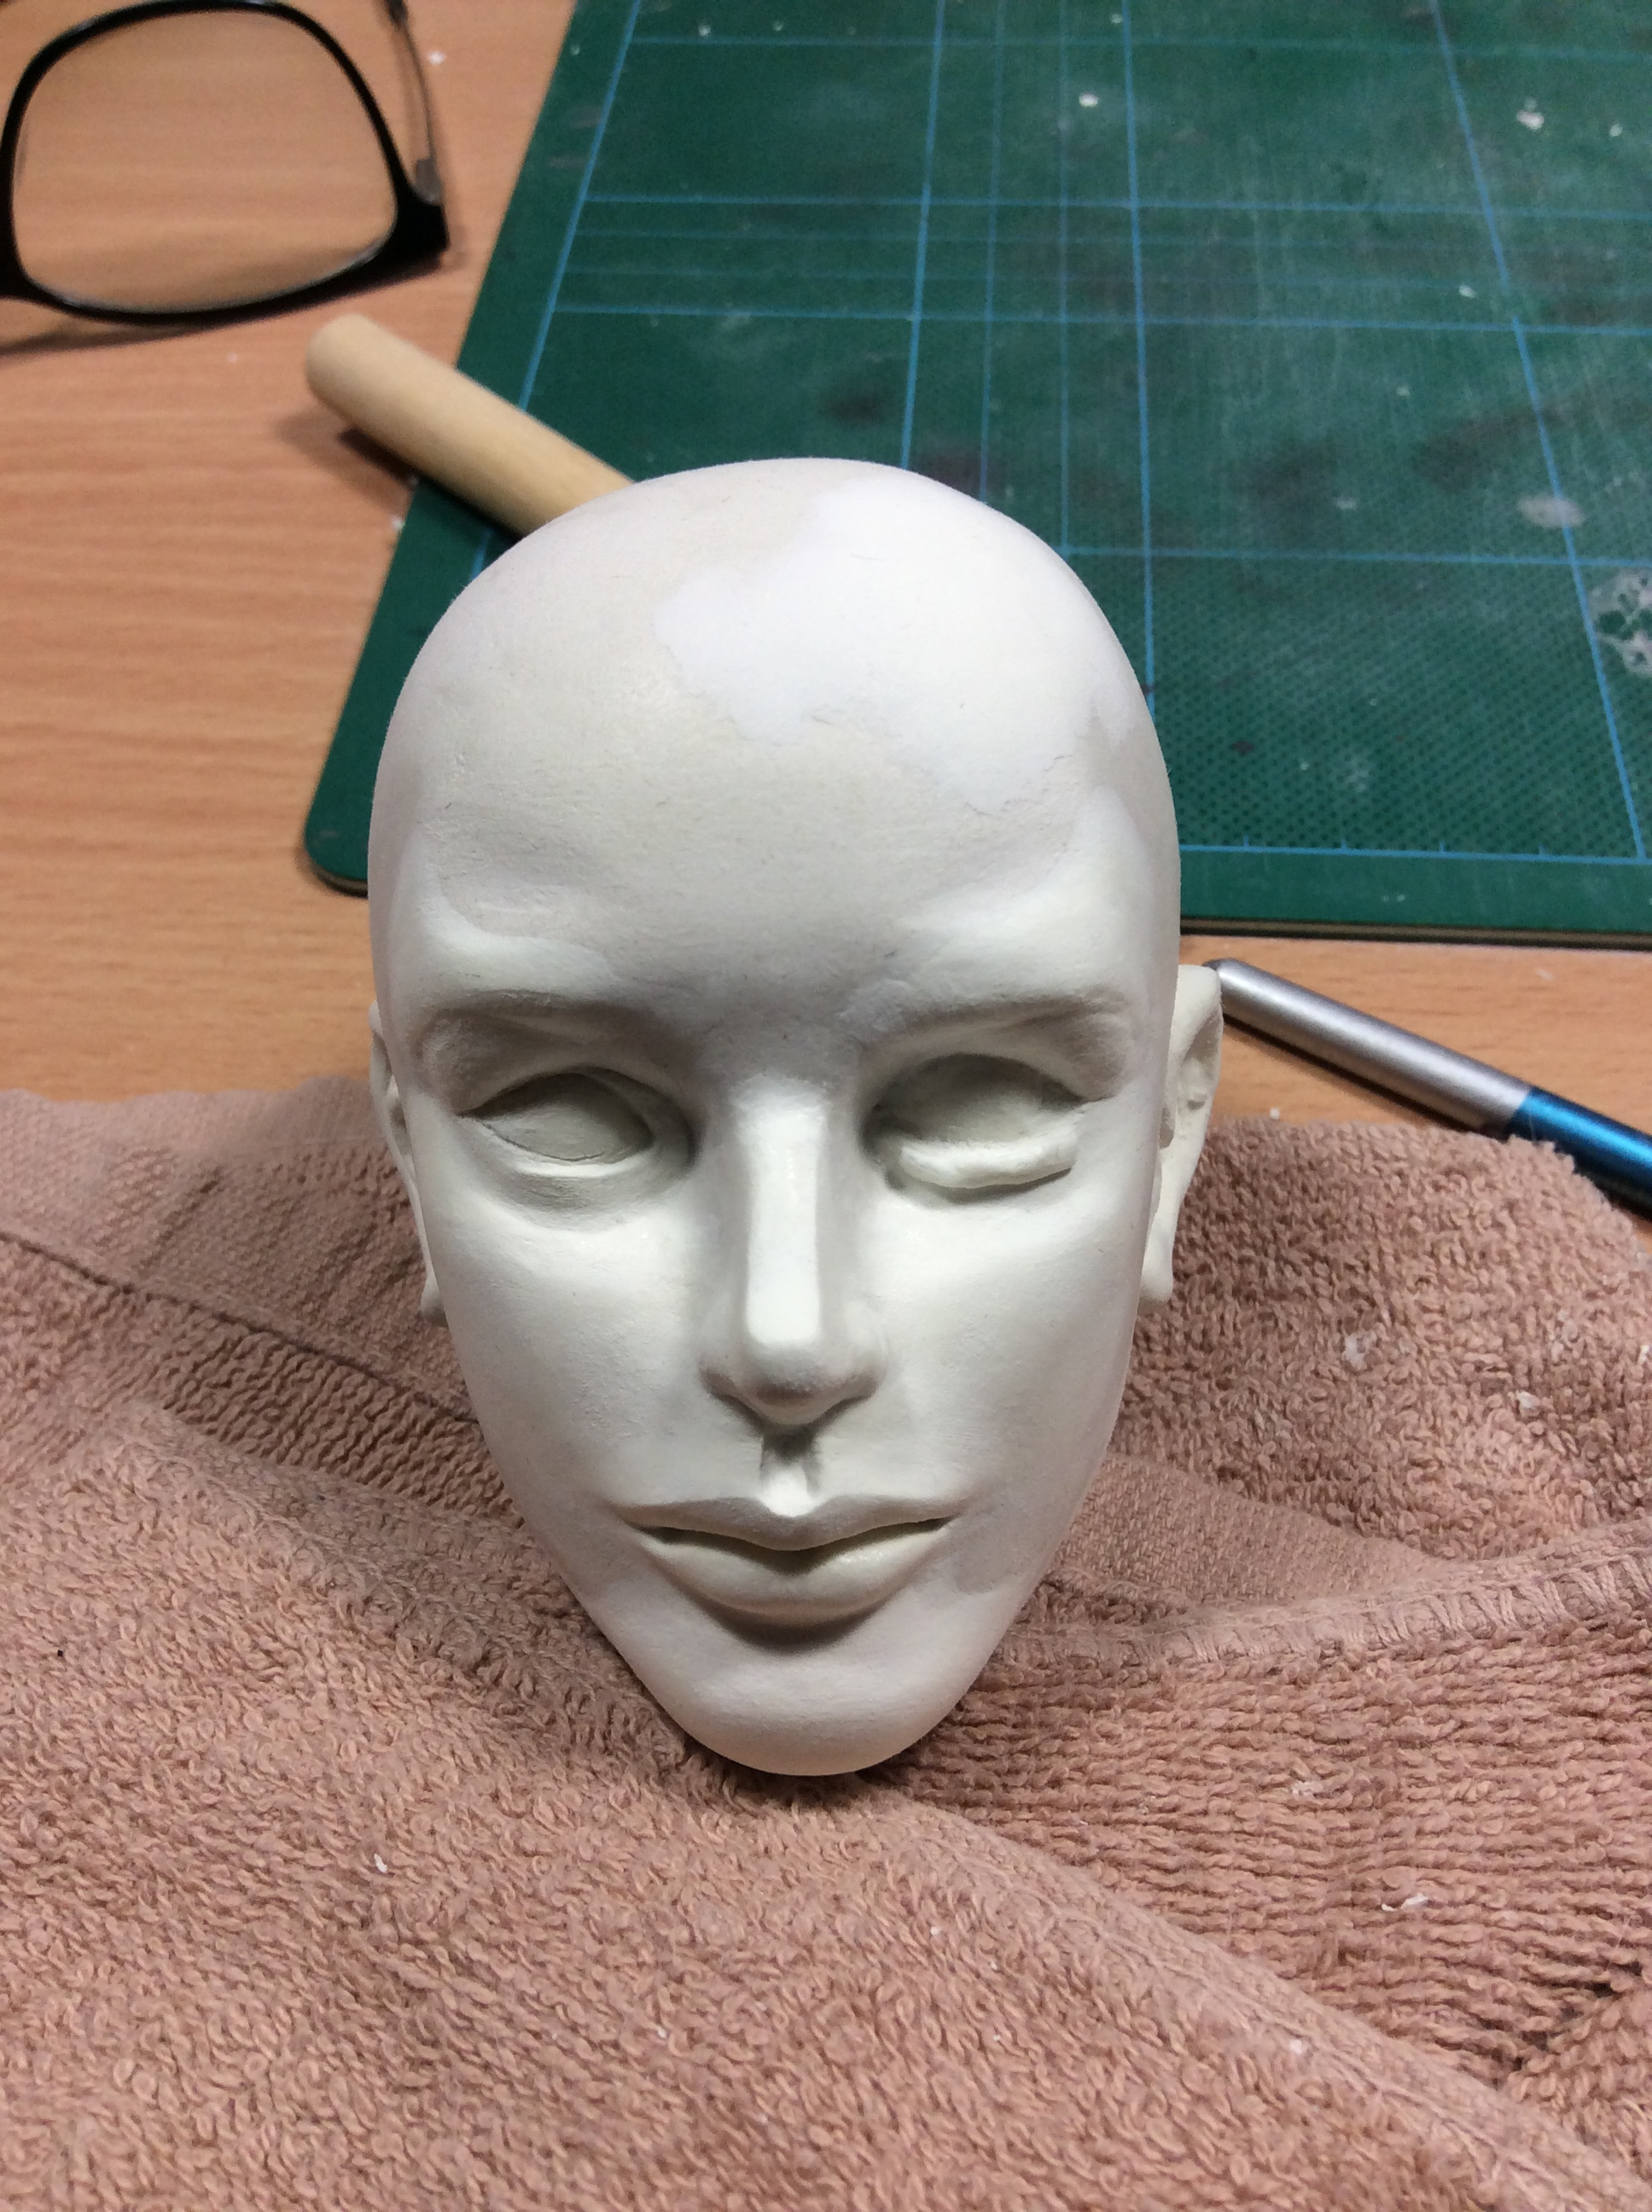 jemse---my-first-doll-head-making-progress-diary-part-3_32374296976_o